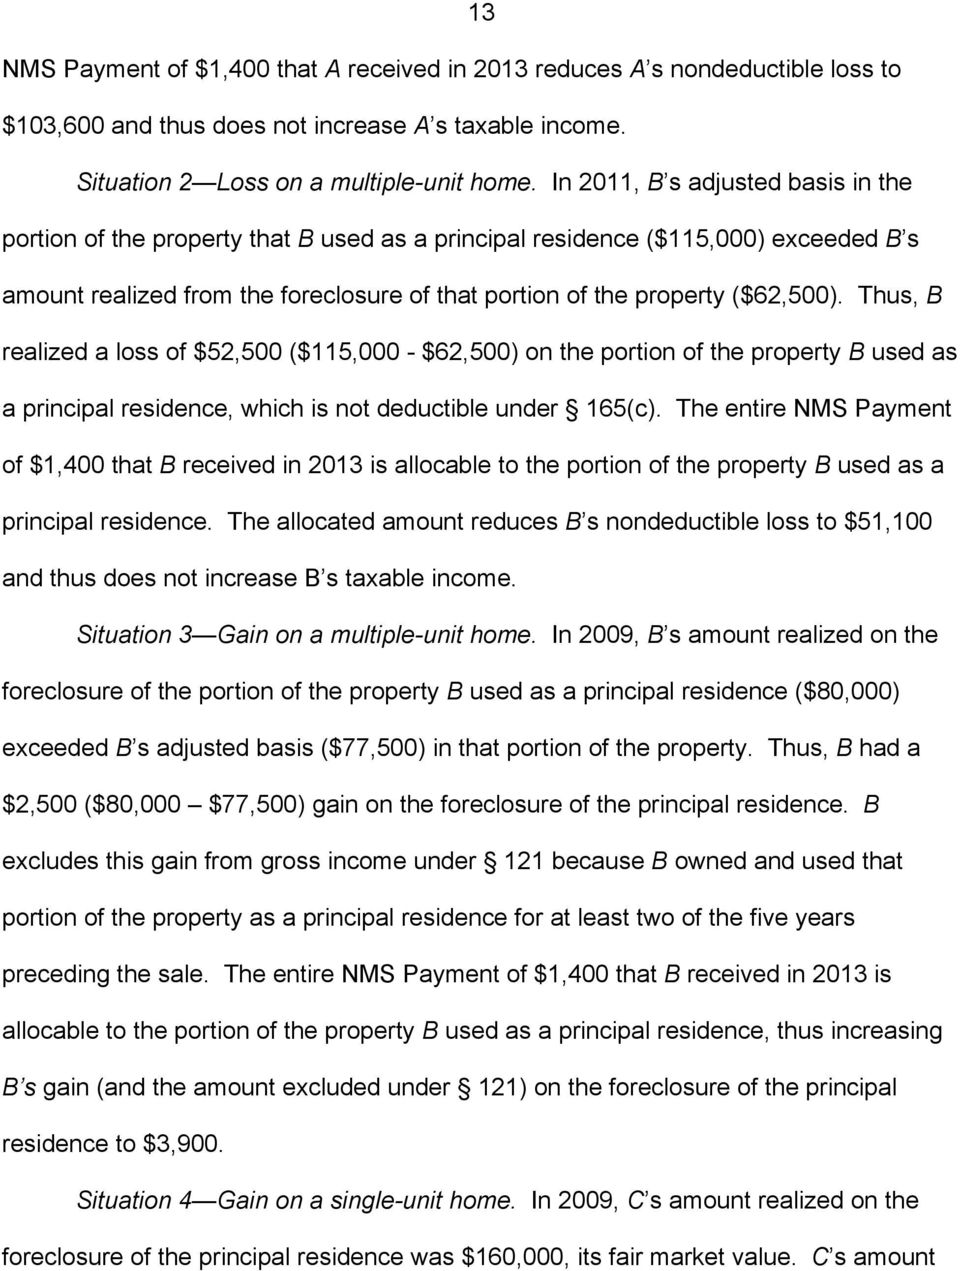 Thus, B realized a loss of $52,500 ($115,000 - $62,500) on the portion of the property B used as a principal residence, which is not deductible under 165(c).